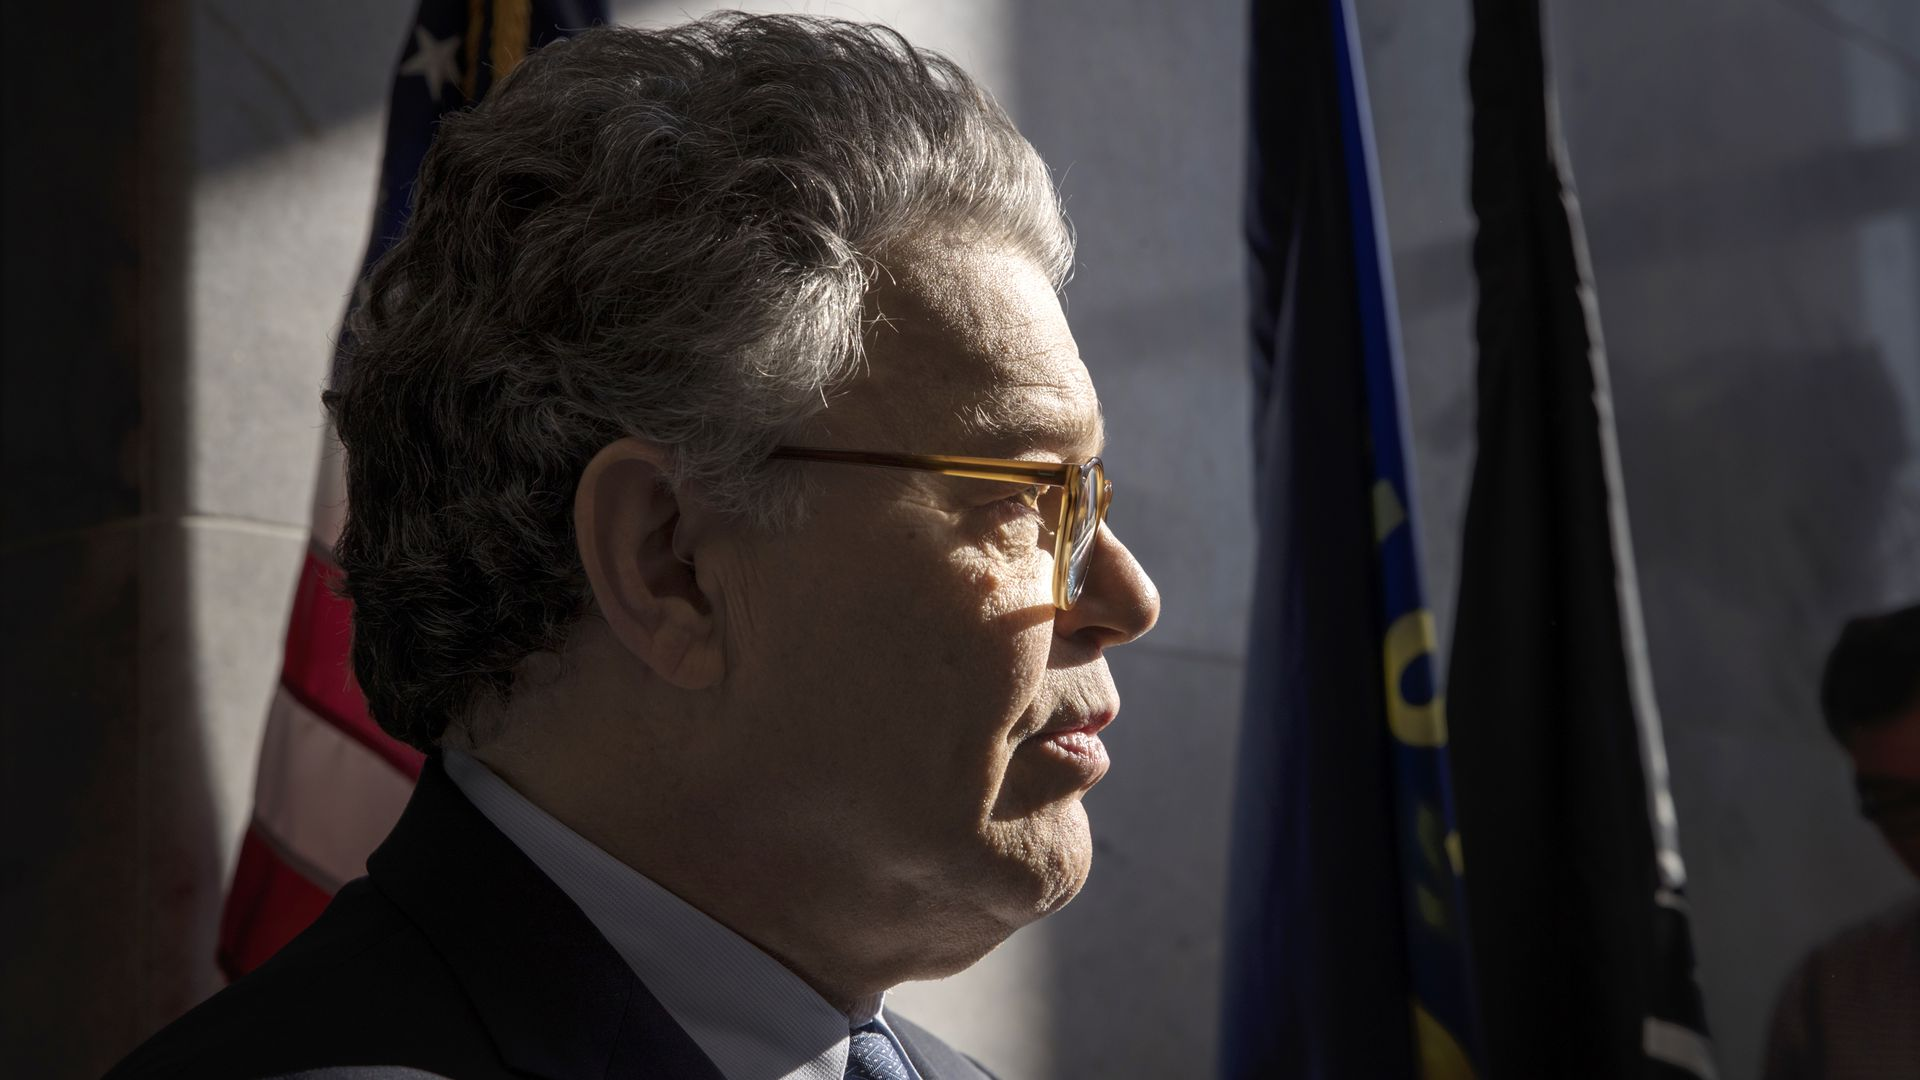 Sen. Al Franken (D-Minn.) talks to the media on Capitol Hill in Washington. Photo: J. Scott Applewhite / AP